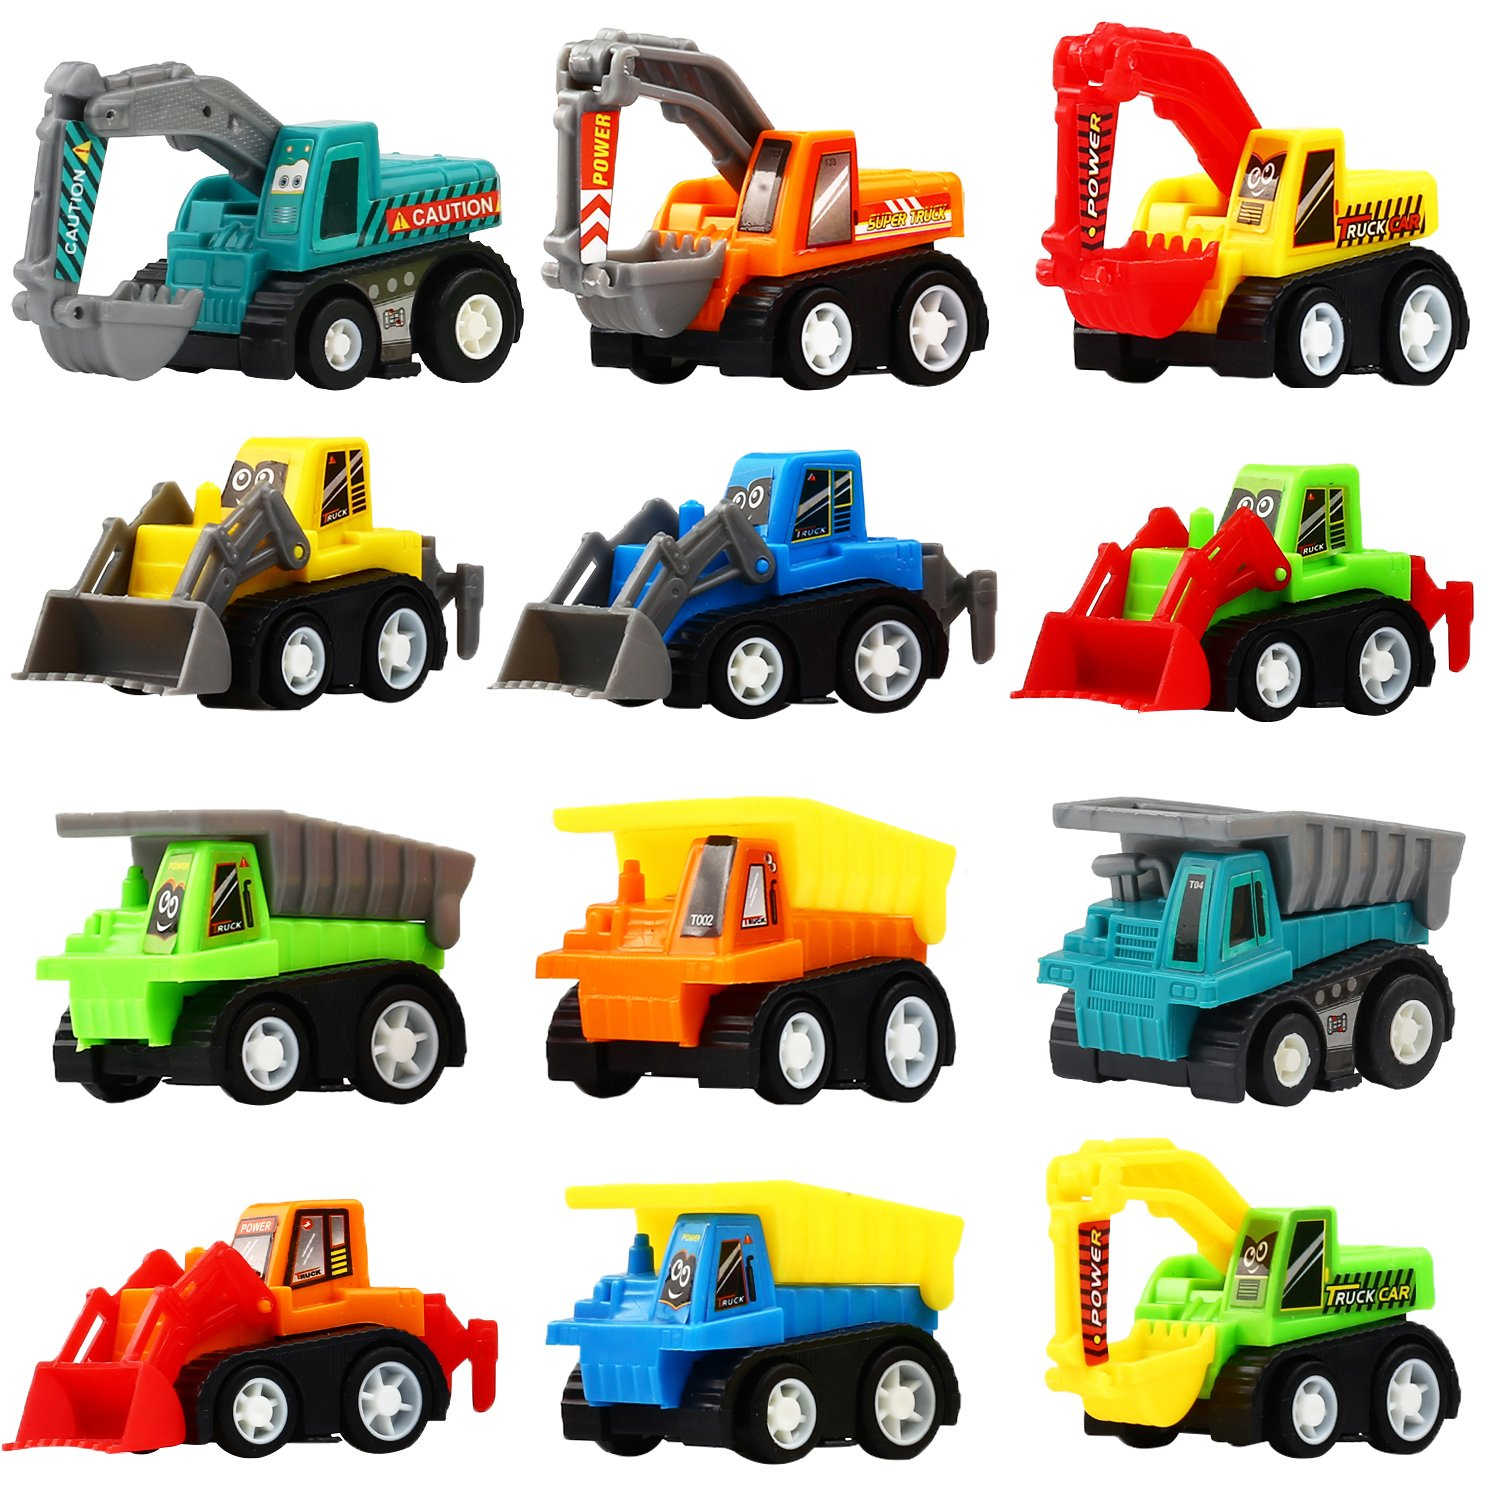 Pull Back Car, 12 Pcs Mini Truck Toy Kit Set, Funcorn Toys Play Construction Engineering Vehicle Educational Preschool for Children Boys Party Favors, Dumper Truck Excavator Kids Birthday Gift Playset